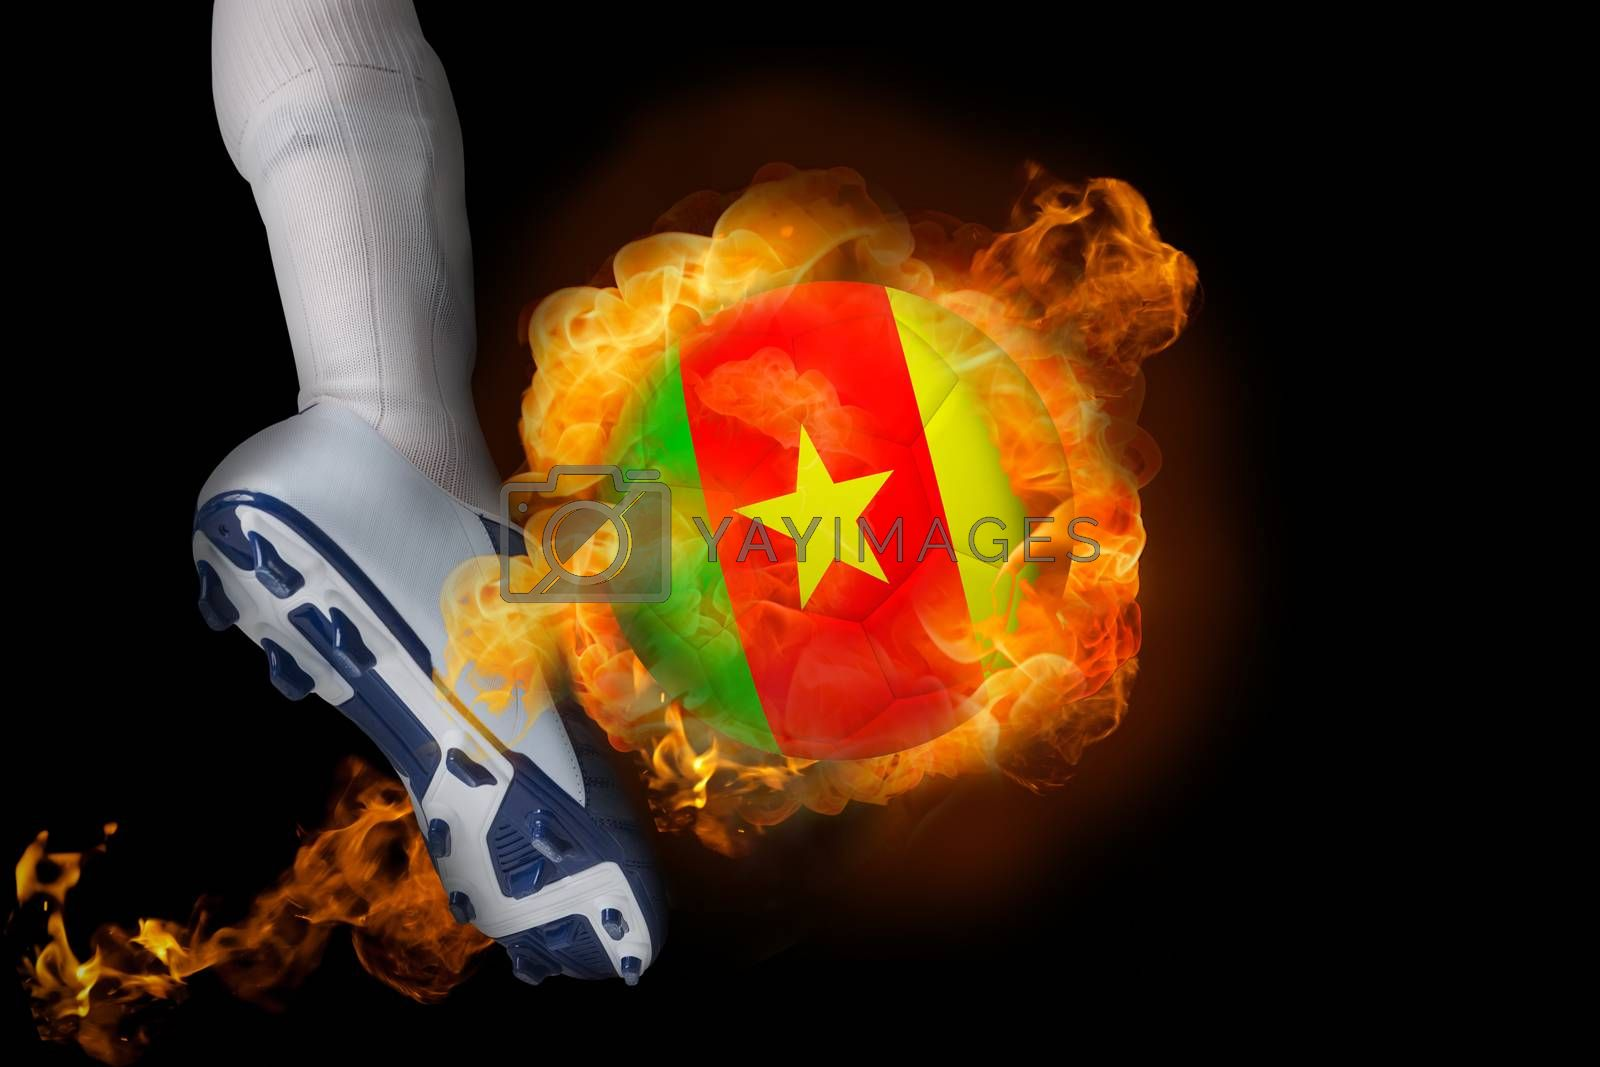 Football player kicking flaming cameroon ball by Wavebreakmedia